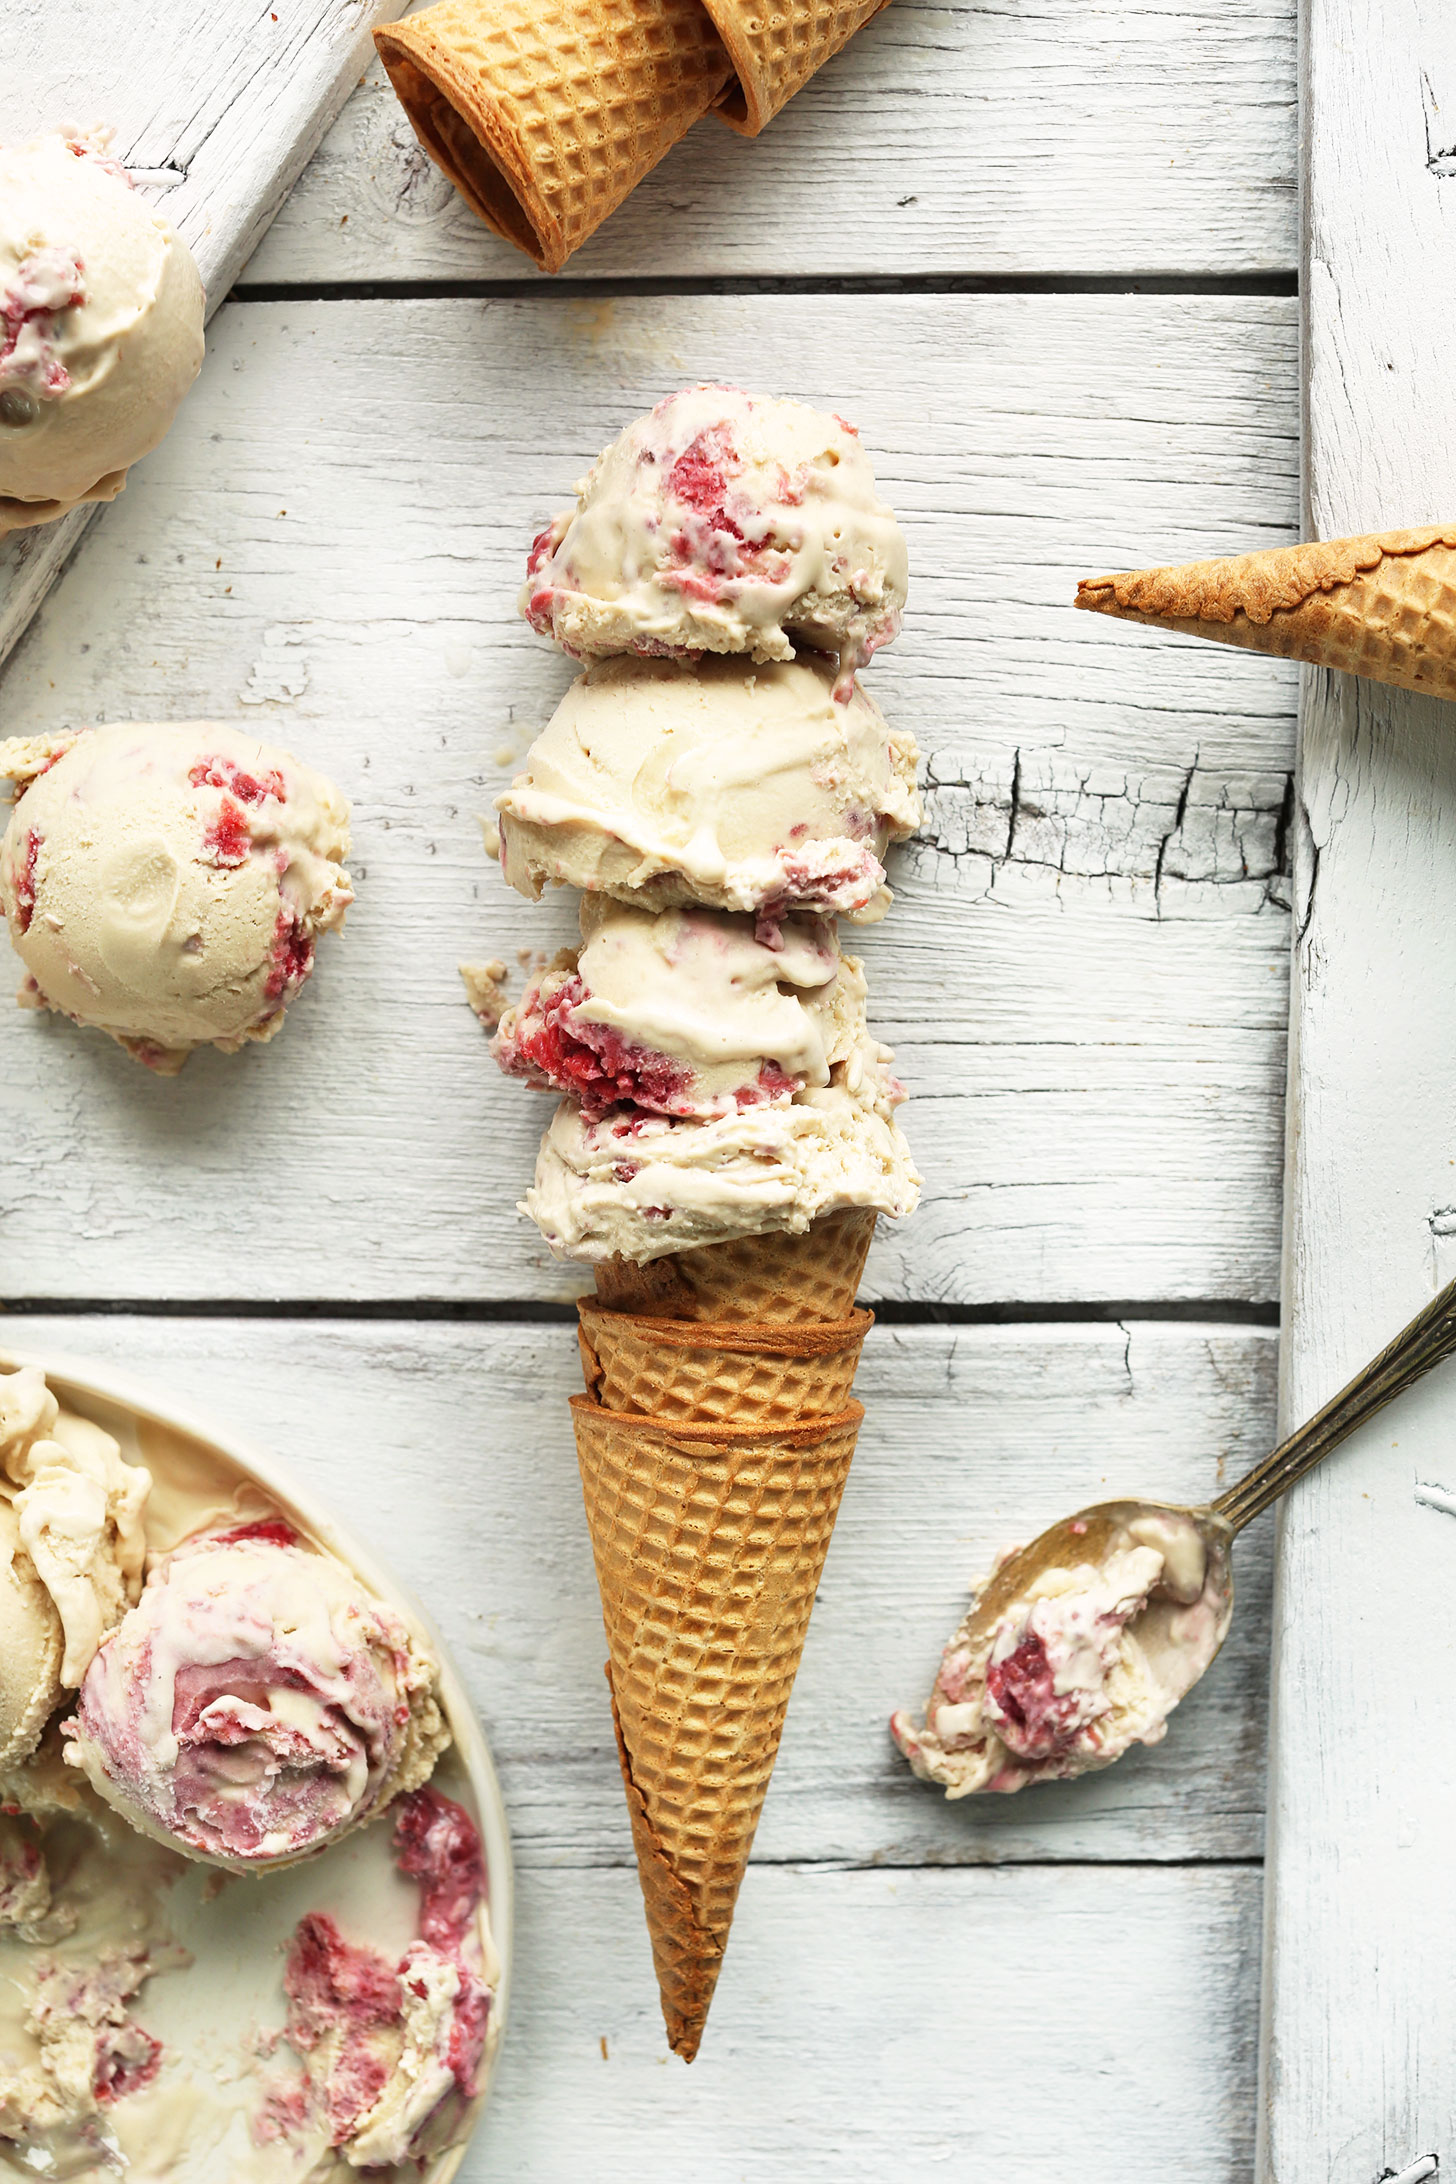 RASPBERRY-SWIRL-Coconut-Ice-Cream-Creamy-tart-sweet-and-SO-delicious-vegan-glutenfree-recipe-icecream-raspberry-berries